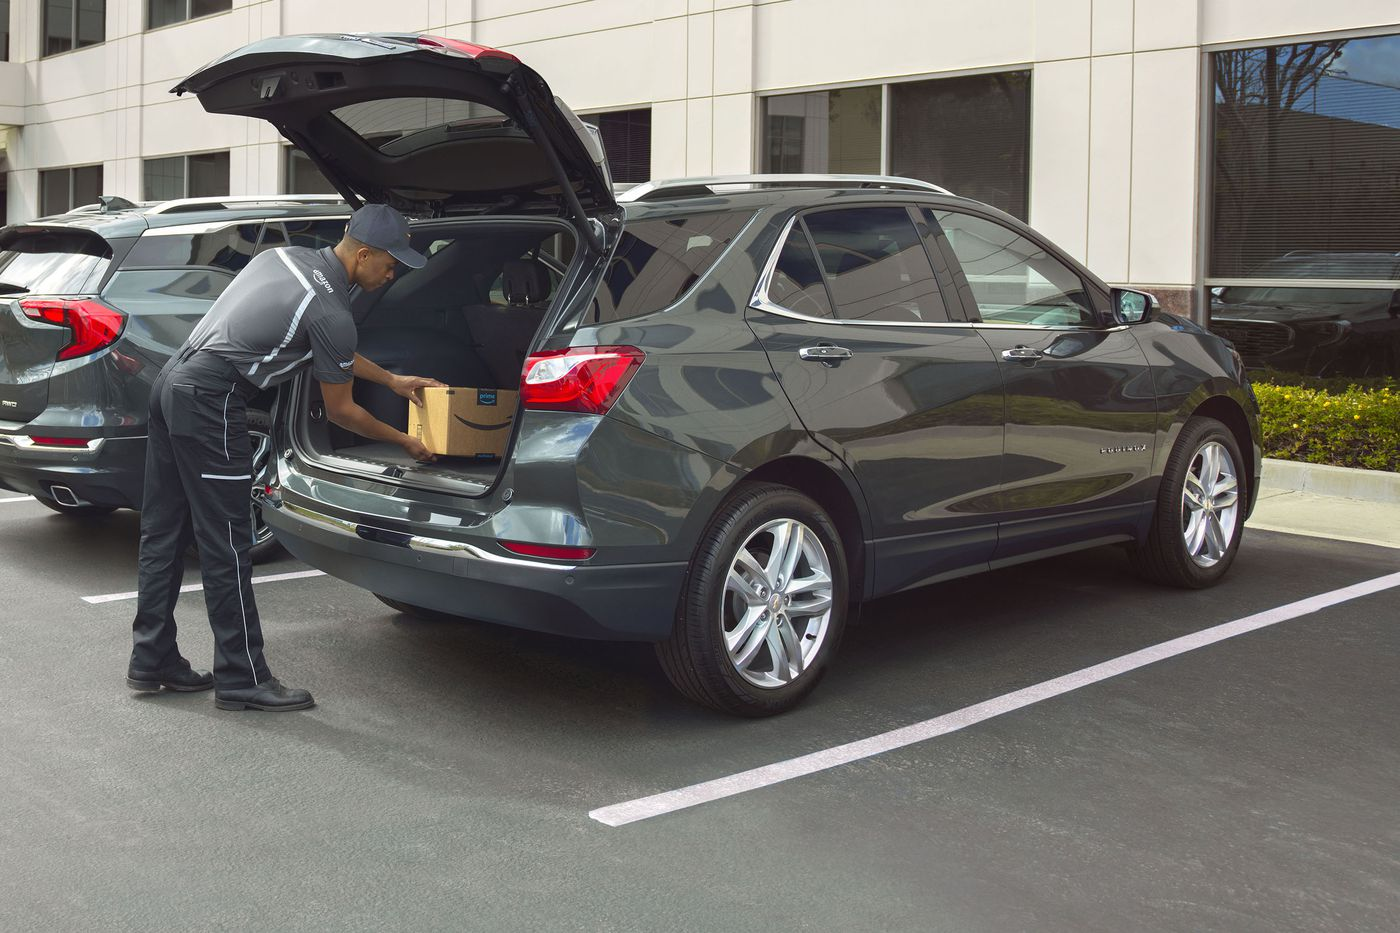 Amazon will now deliver packages to the trunk of your car